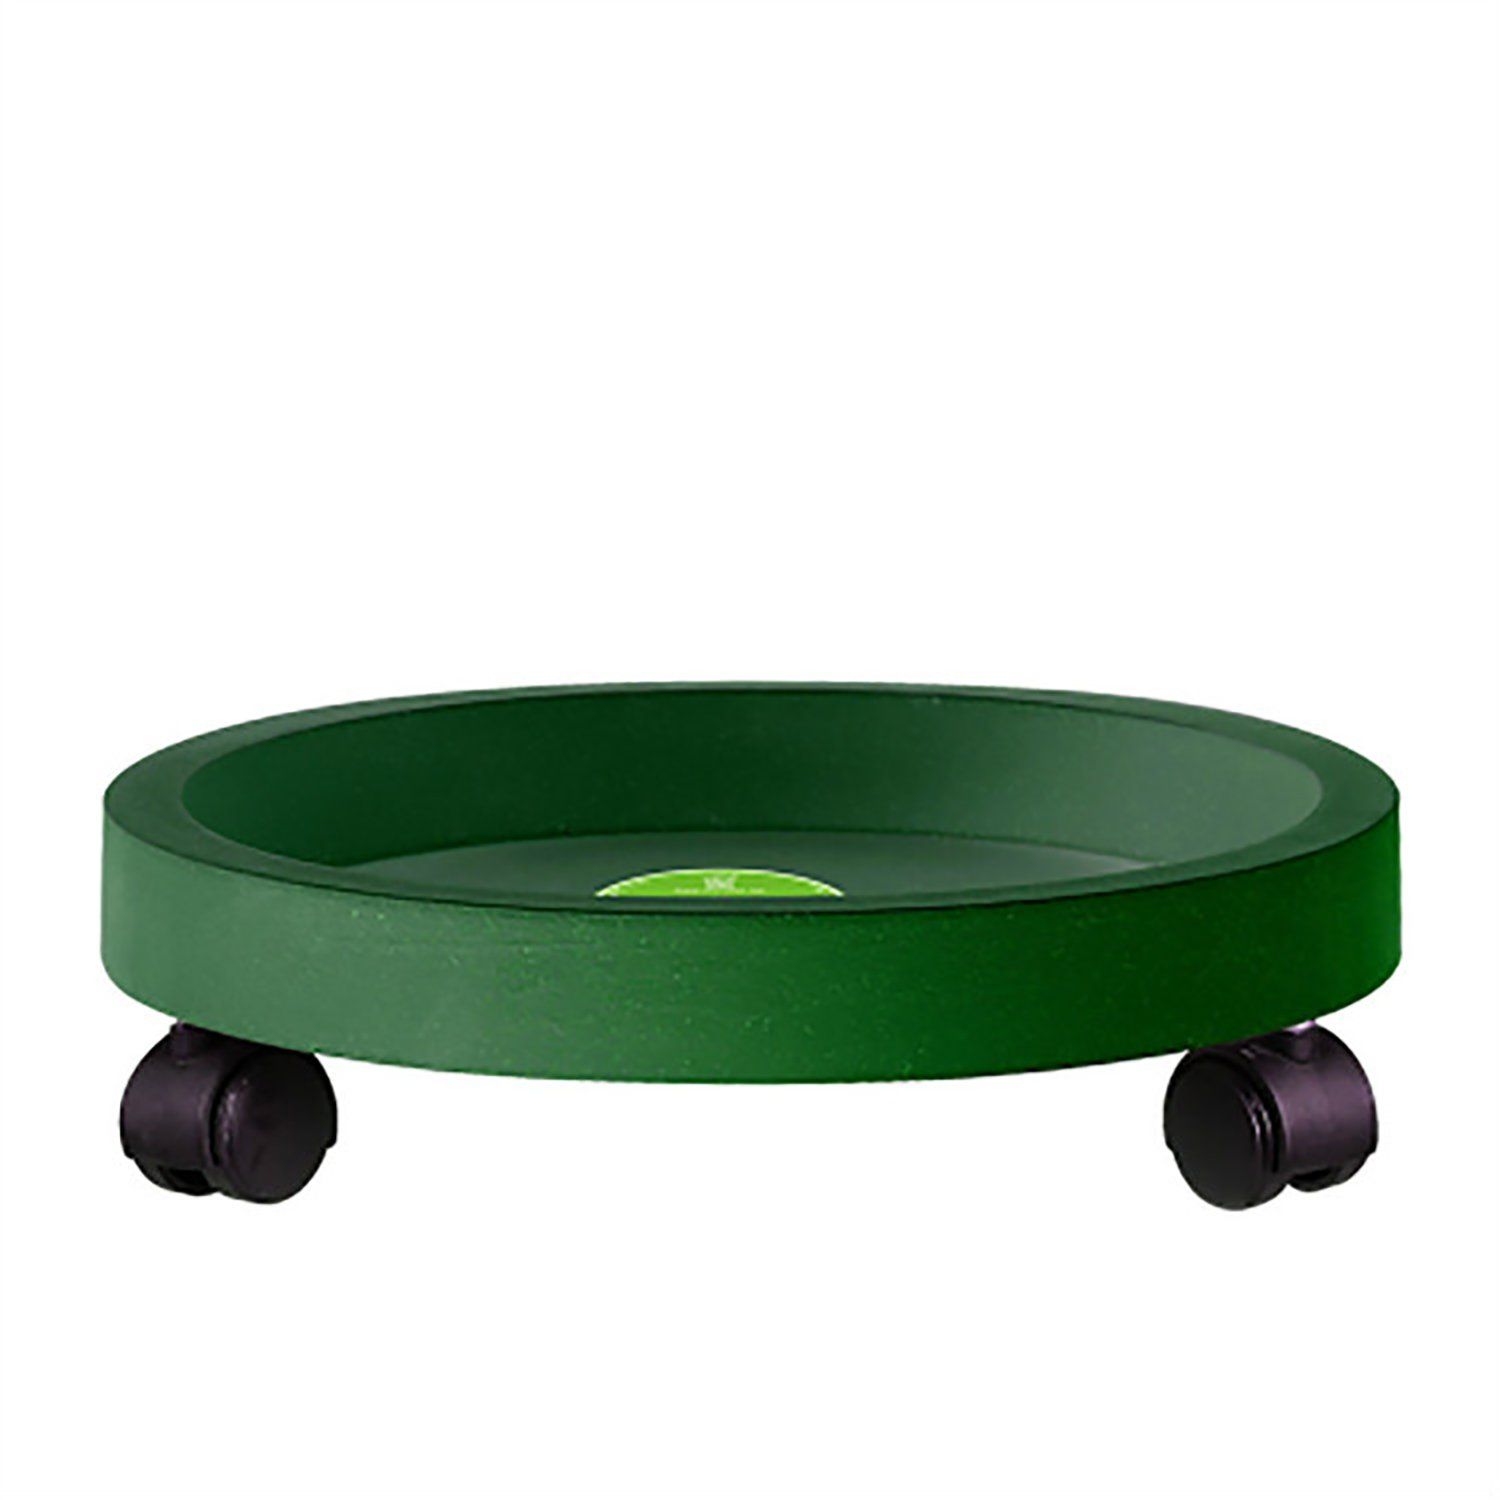 erozy 13-Inch Plastic Heavy Duty Plant Saucer Caddy Plant Dolly, Green